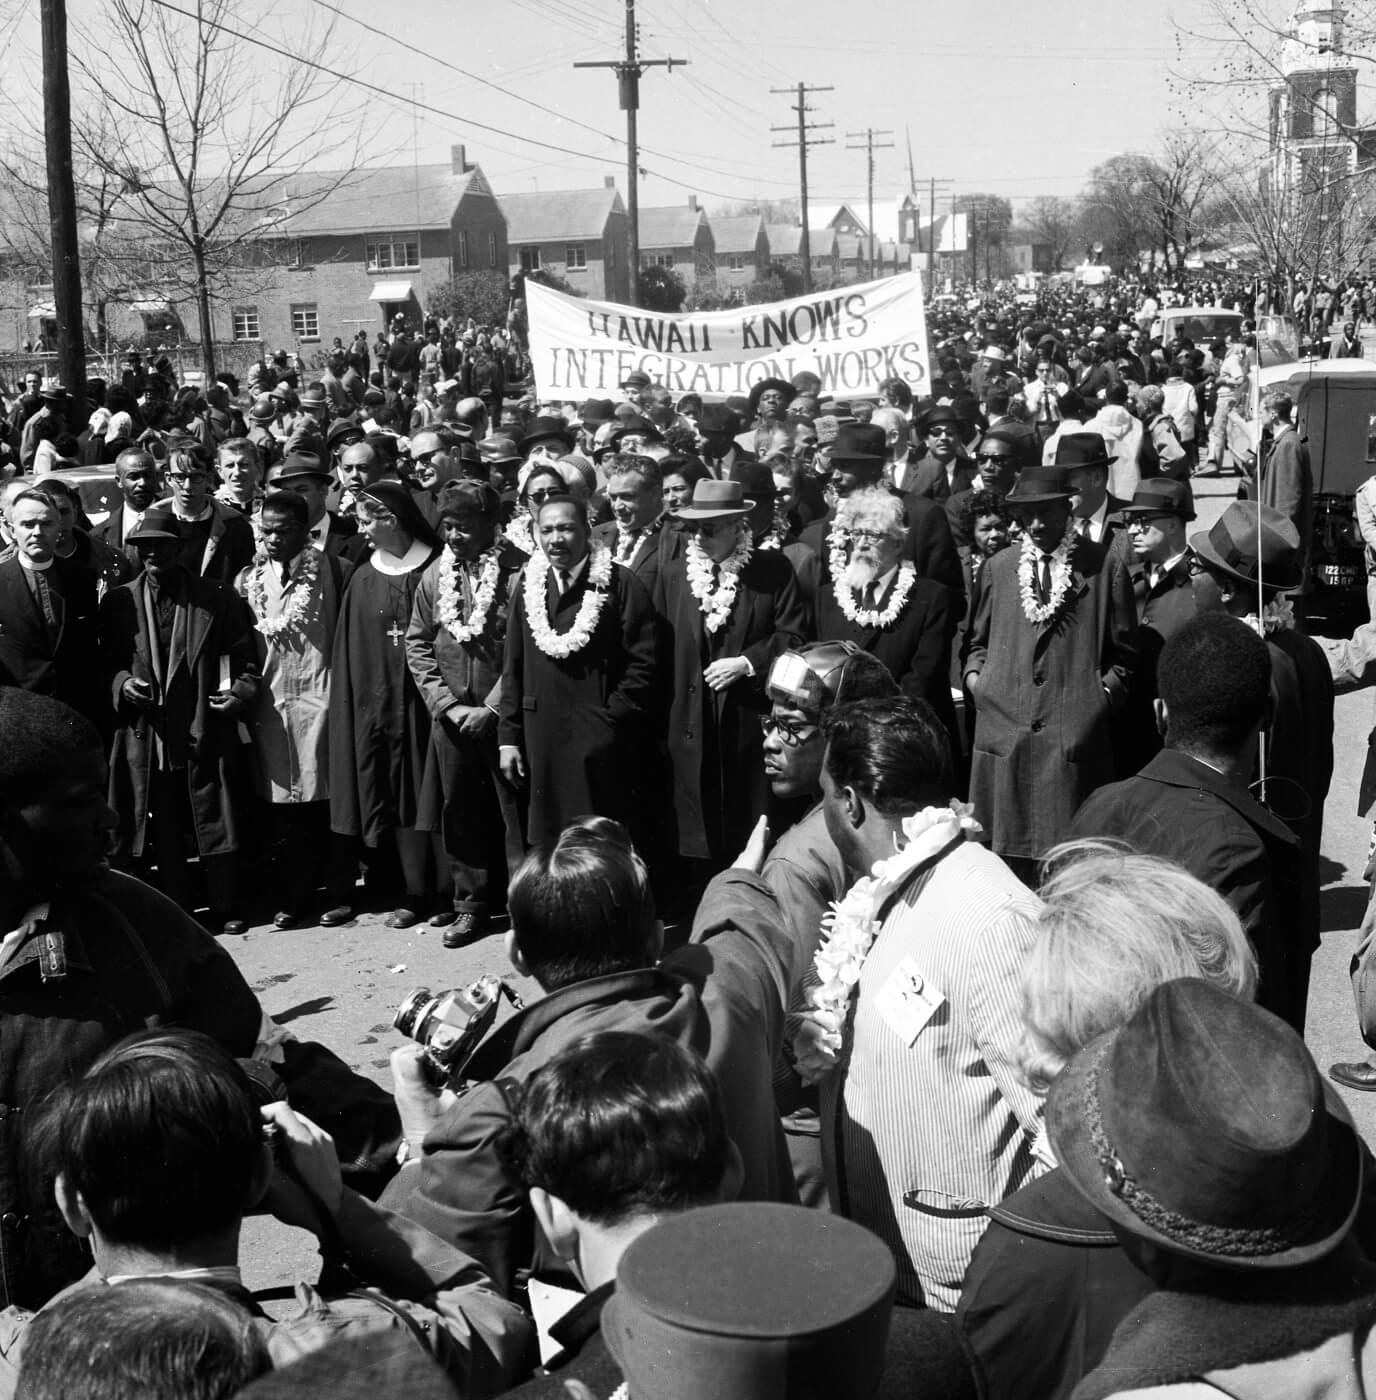 King Hawaii Selma marches